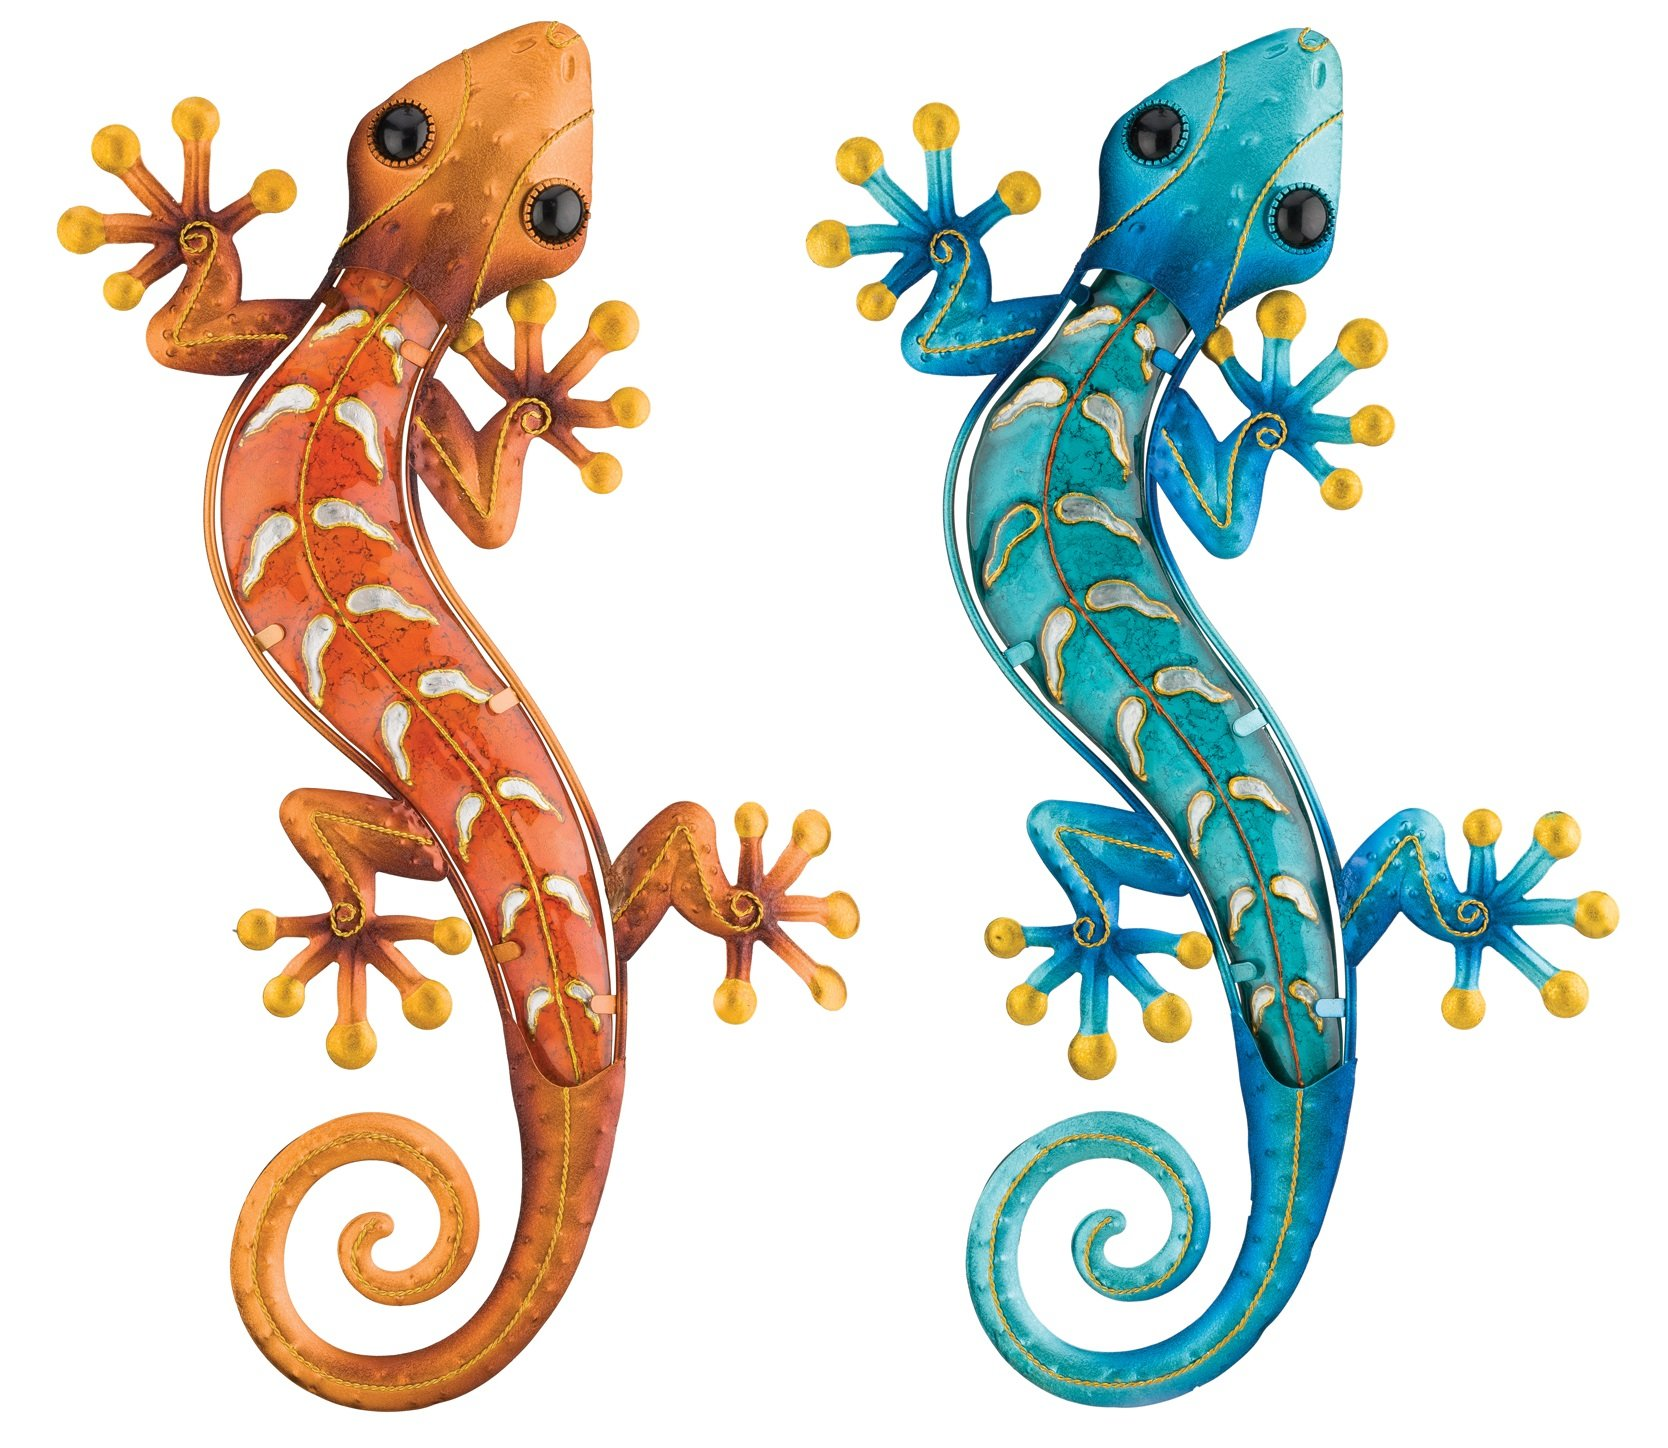 Regal Art & Gift Gecko Decor, 18-Inch Copper and Blue Geckos for Home, Garden, and Wall Decoration